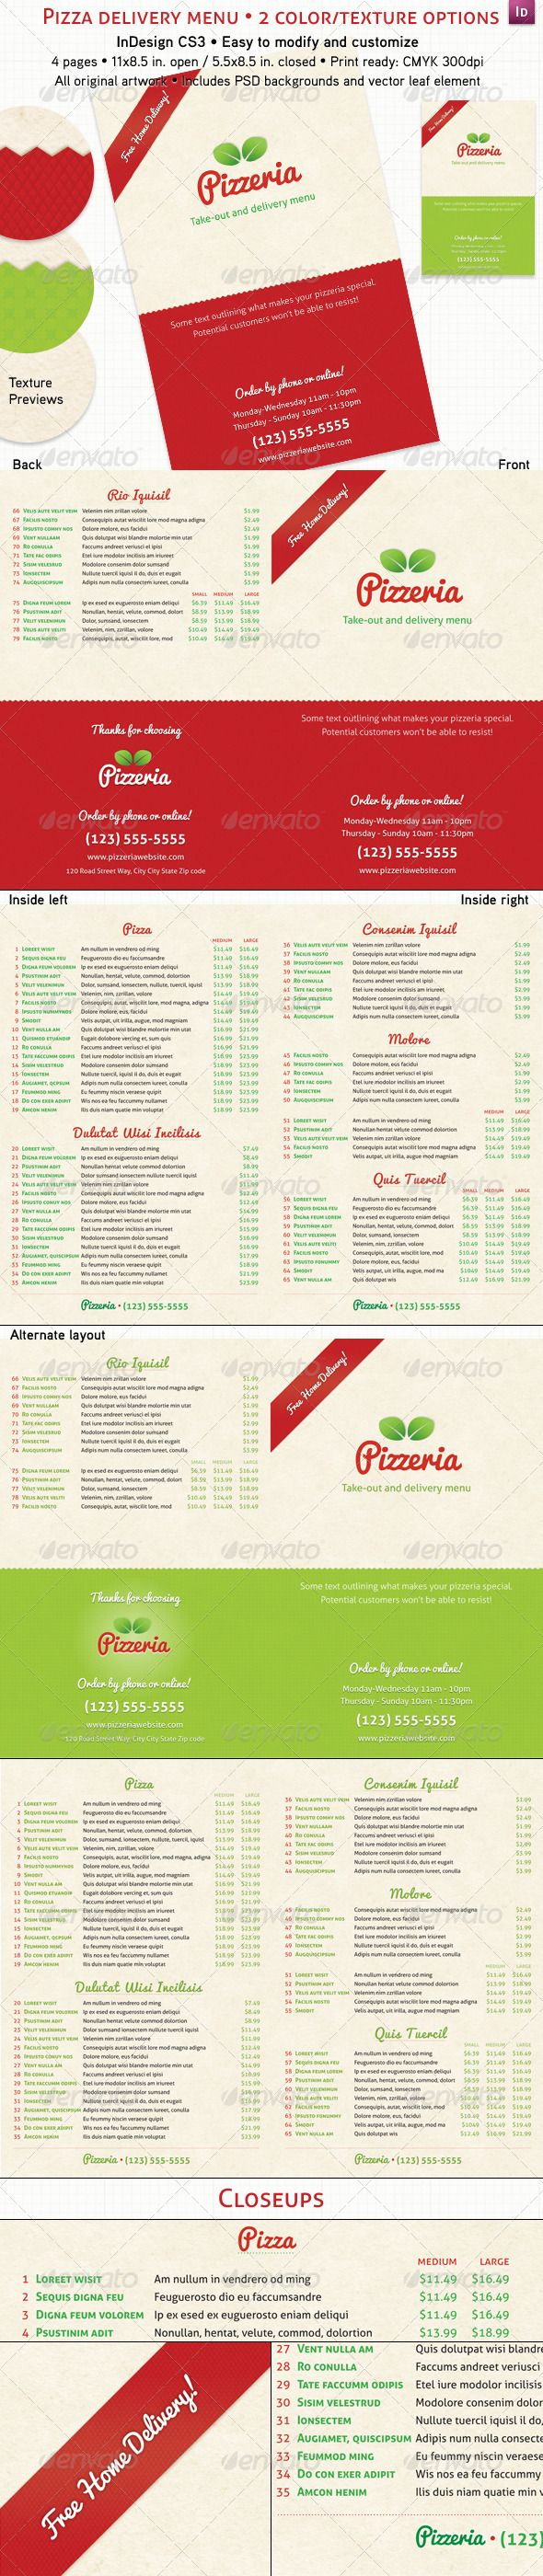 4 Page Pizzeria Menu - Food Menus Template PSD, InDesign INDD, Vector EPS. Download here: http://graphicriver.net/item/4-page-pizzeria-menu/237687?s_rank=141&ref=yinkira